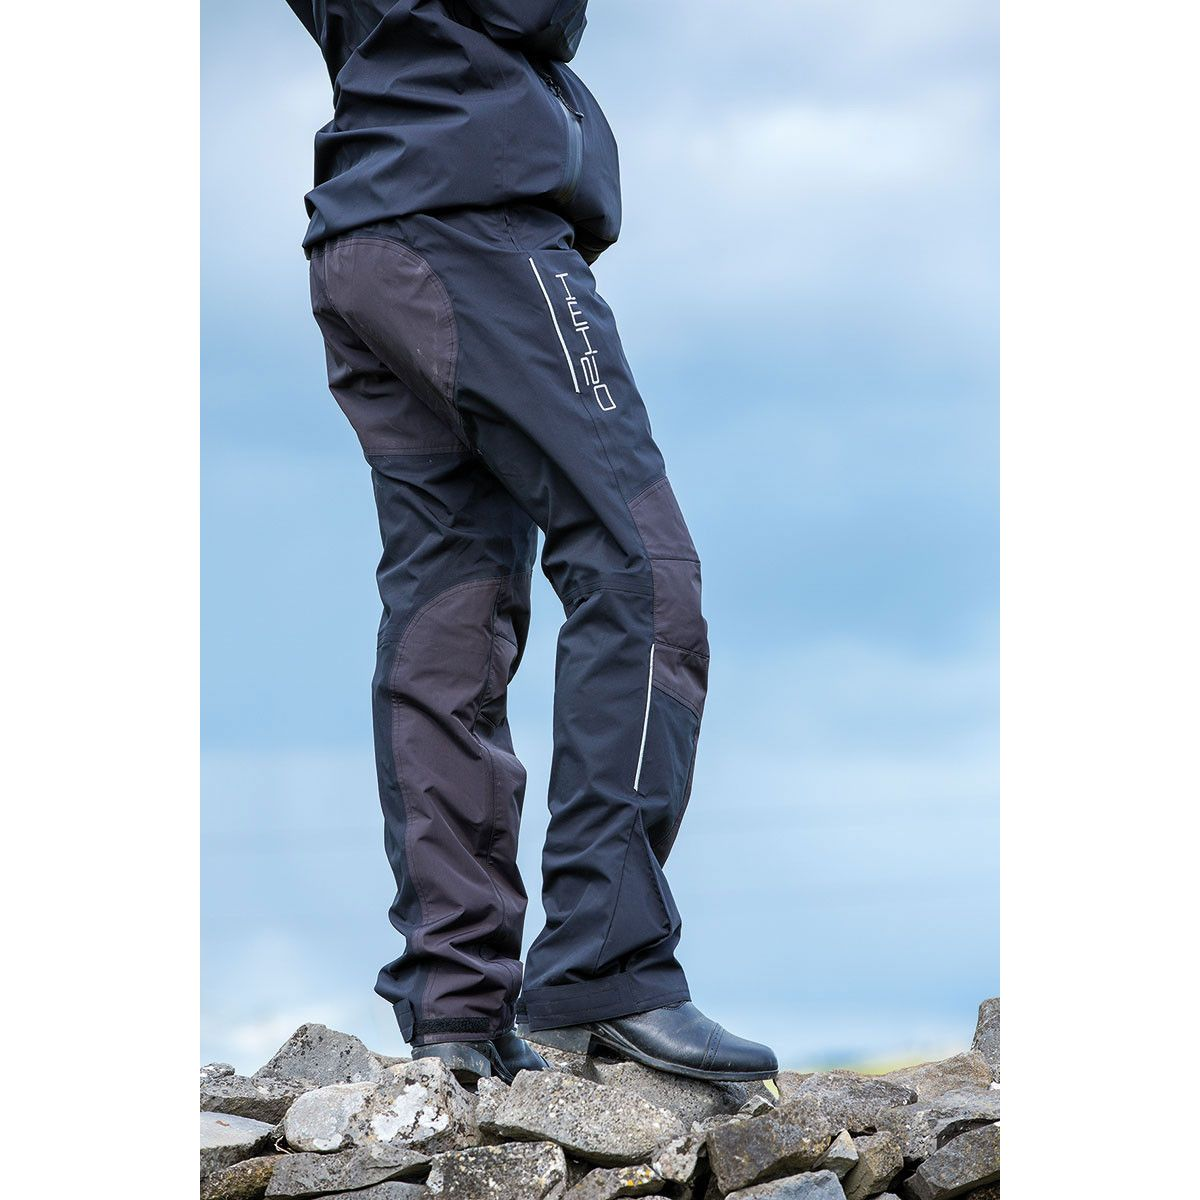 Horseware H20 Pull Ups Waterproof Pant available from